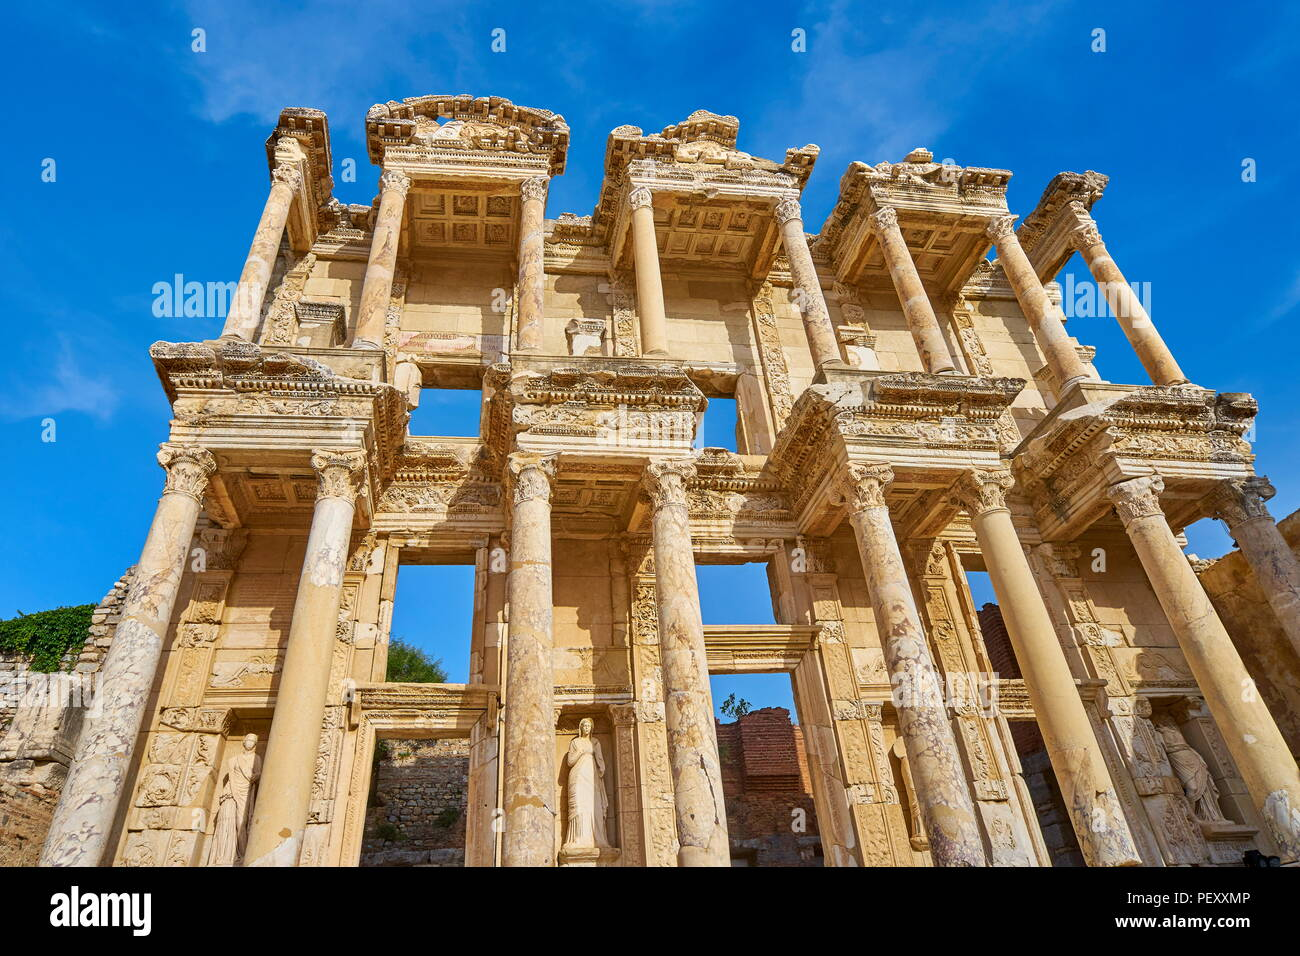 Efes, Library of Celsus in Ephesus Ancient City, Izmir, Turkey - Stock Image